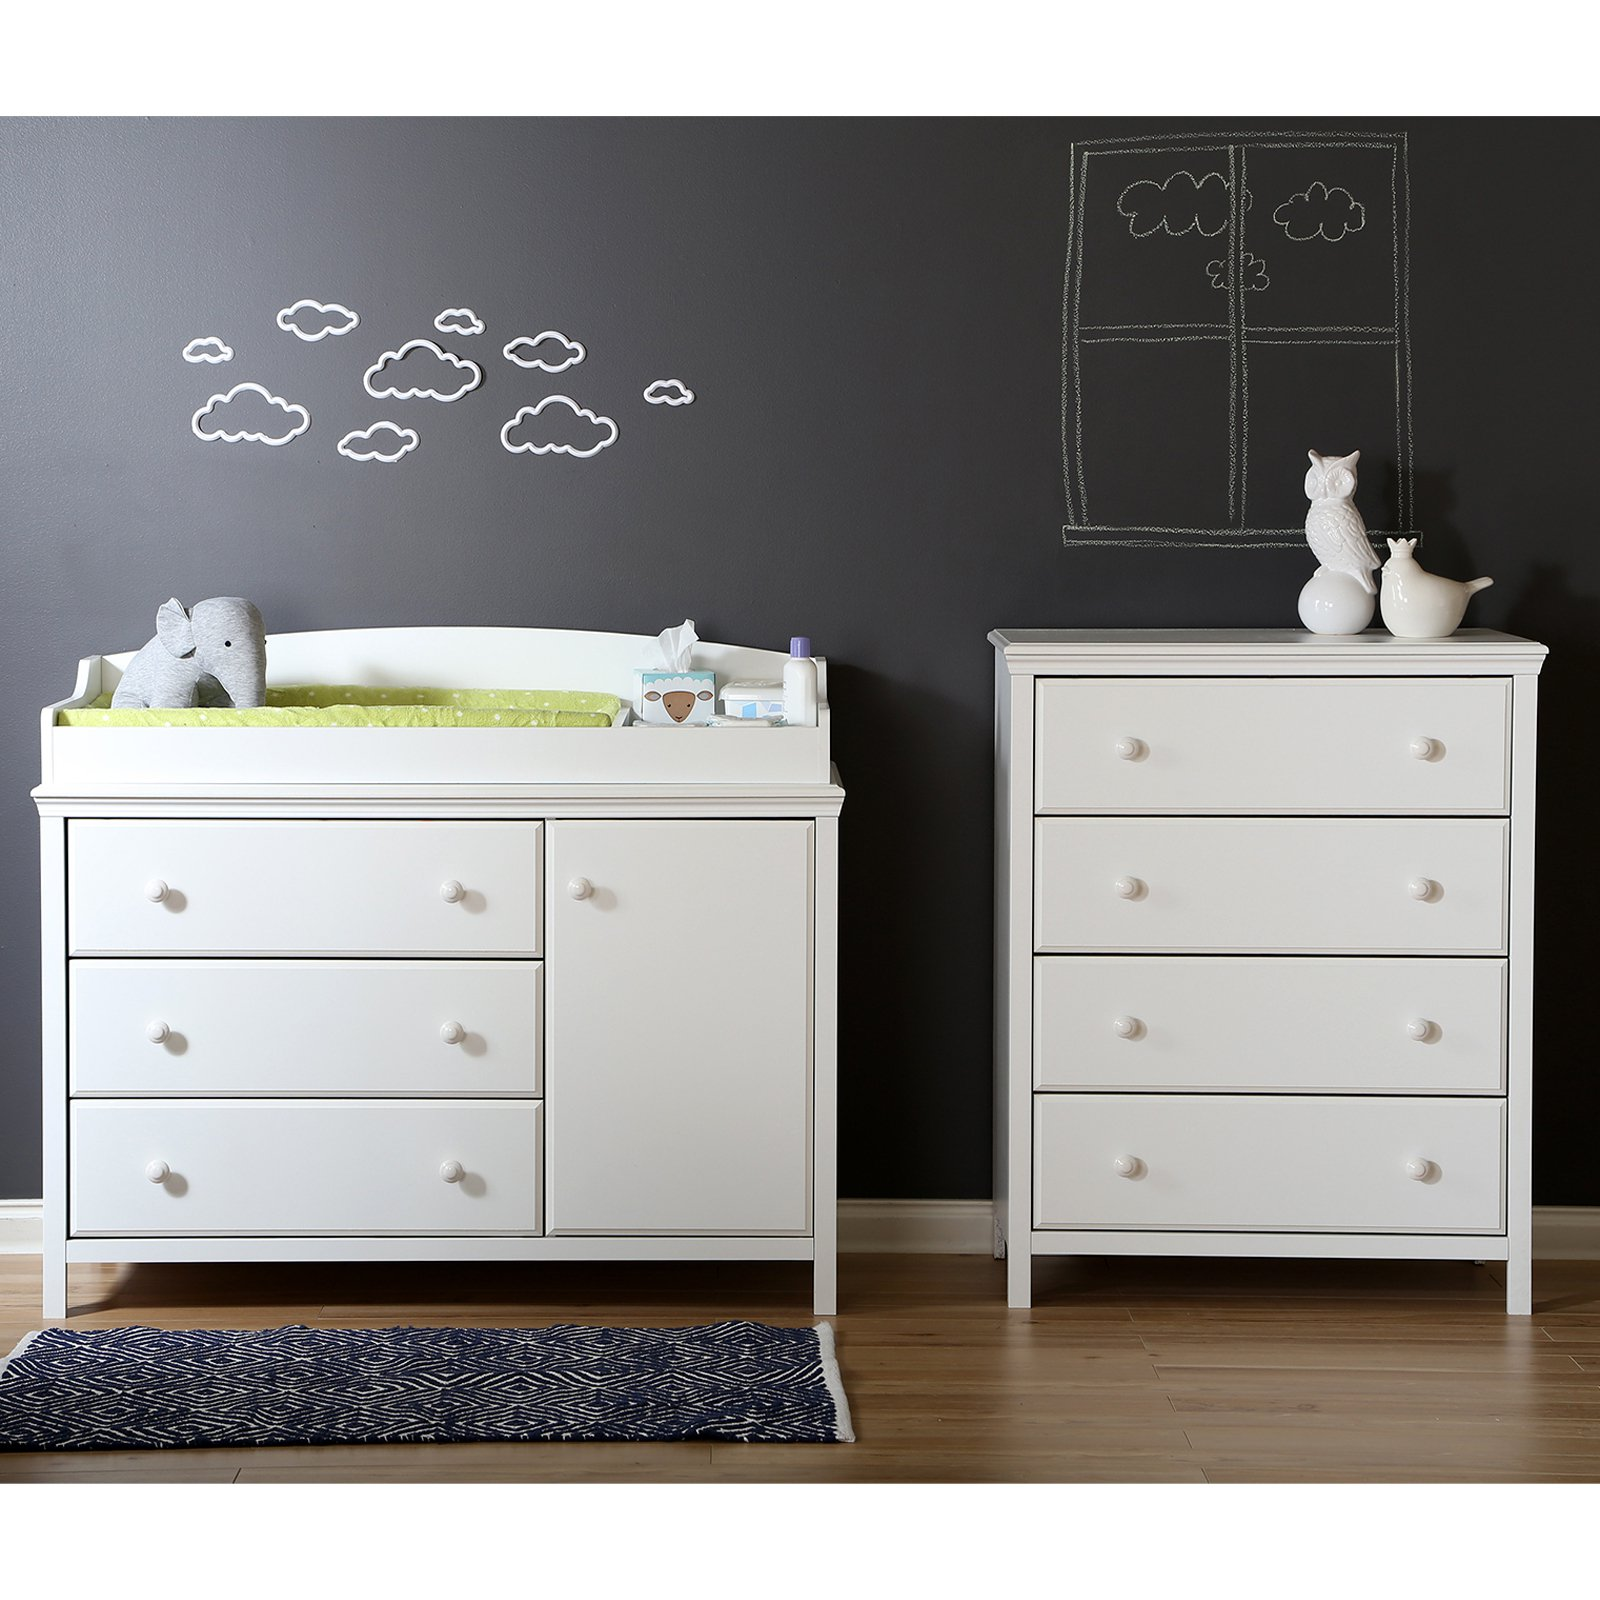 South Shore Cotton Candy Changing Table and 4 Drawer Chest Set by South Shore Furniture